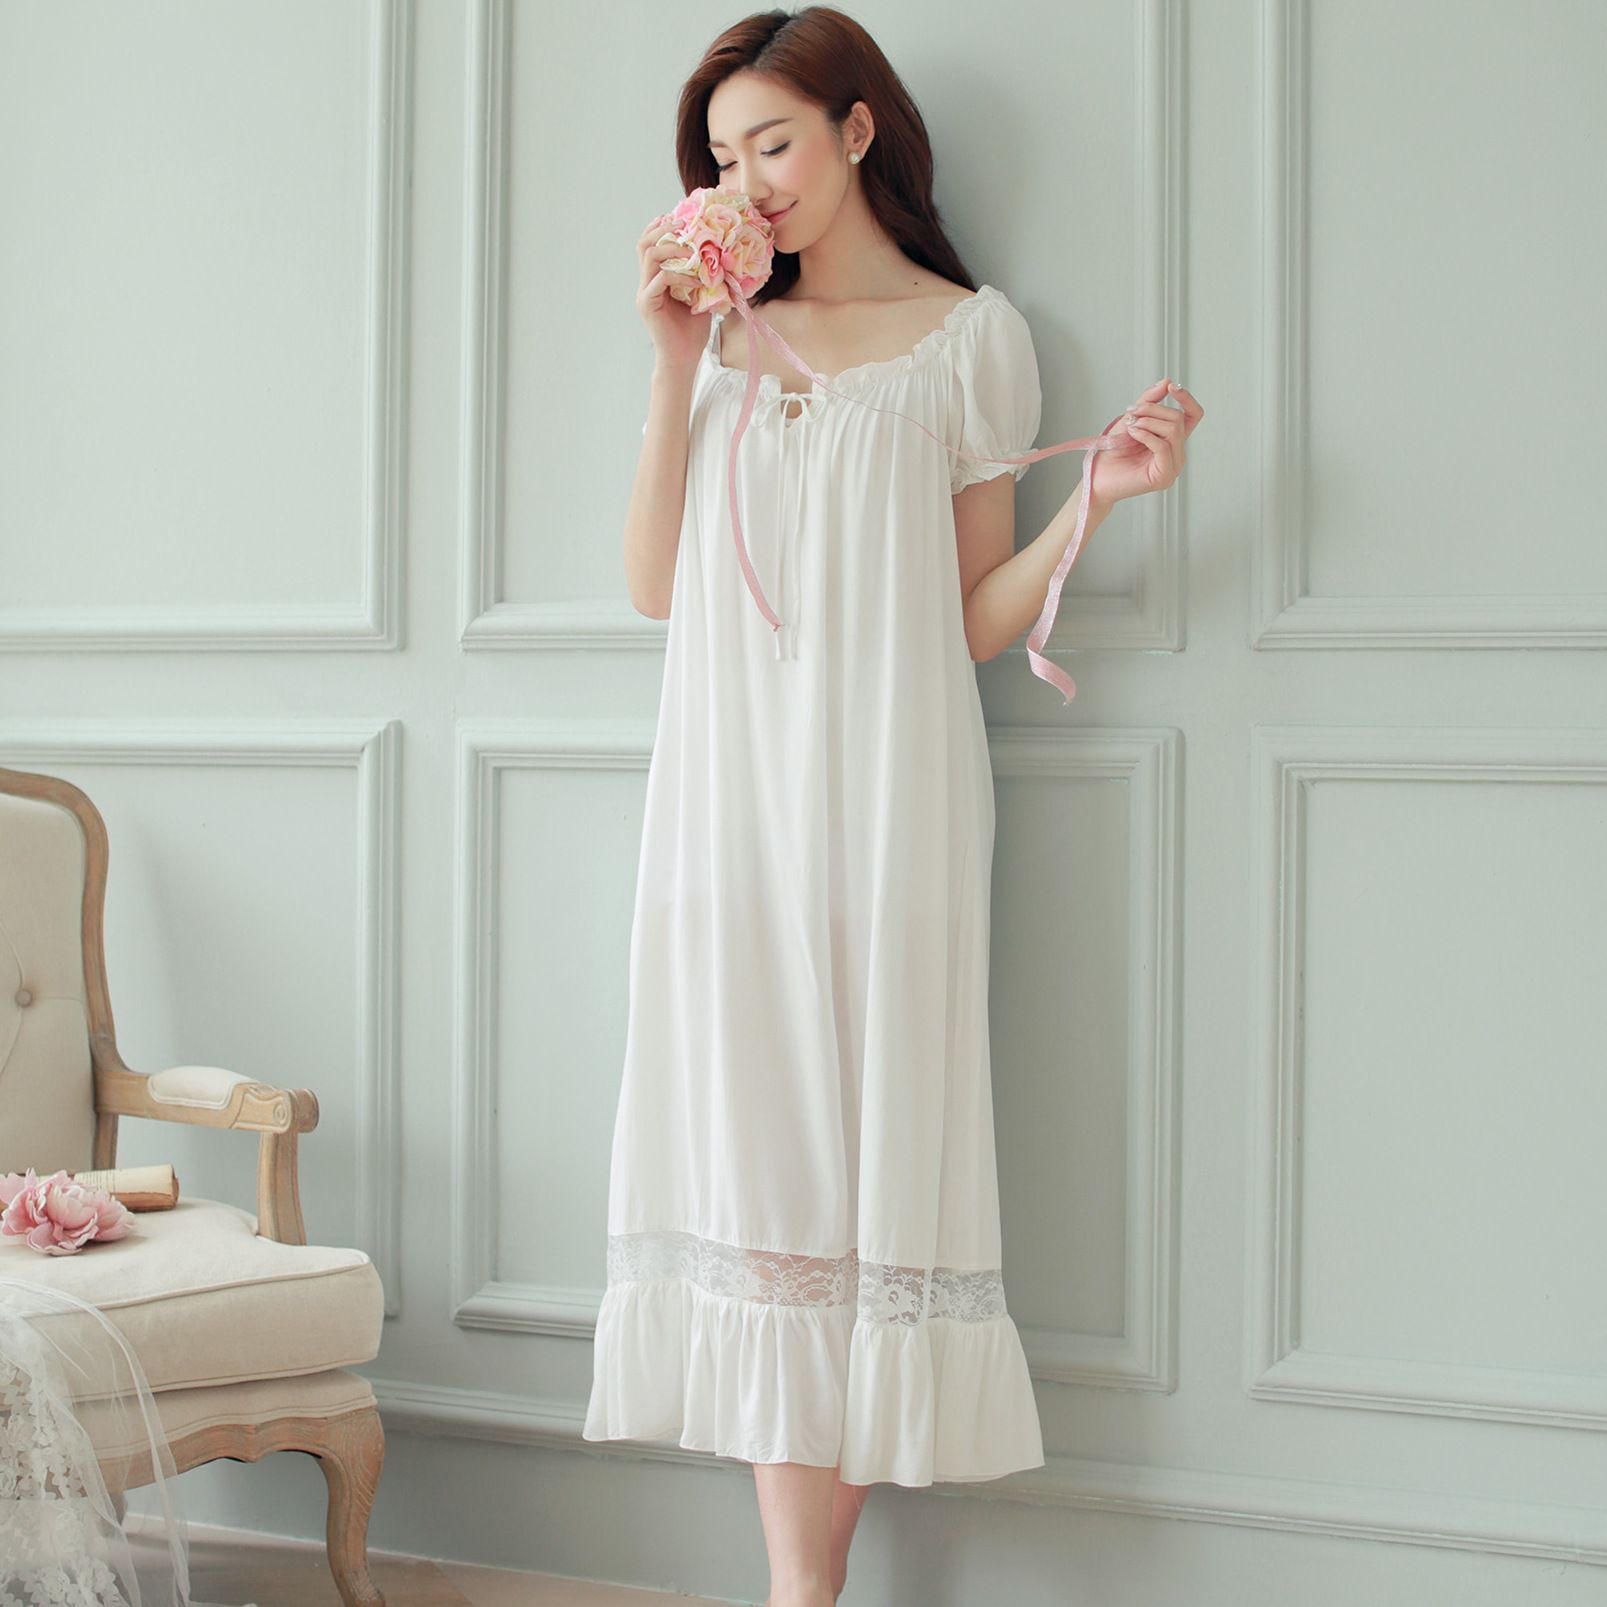 671c5bcc759c9 Hot Womens Long Sleeping Dress White Nightgown Short Sleeve Summer  Nightdress Elegant Vintage Nightgowns Home Dress For Sleeping-in Nightgowns    Sleepshirts ...